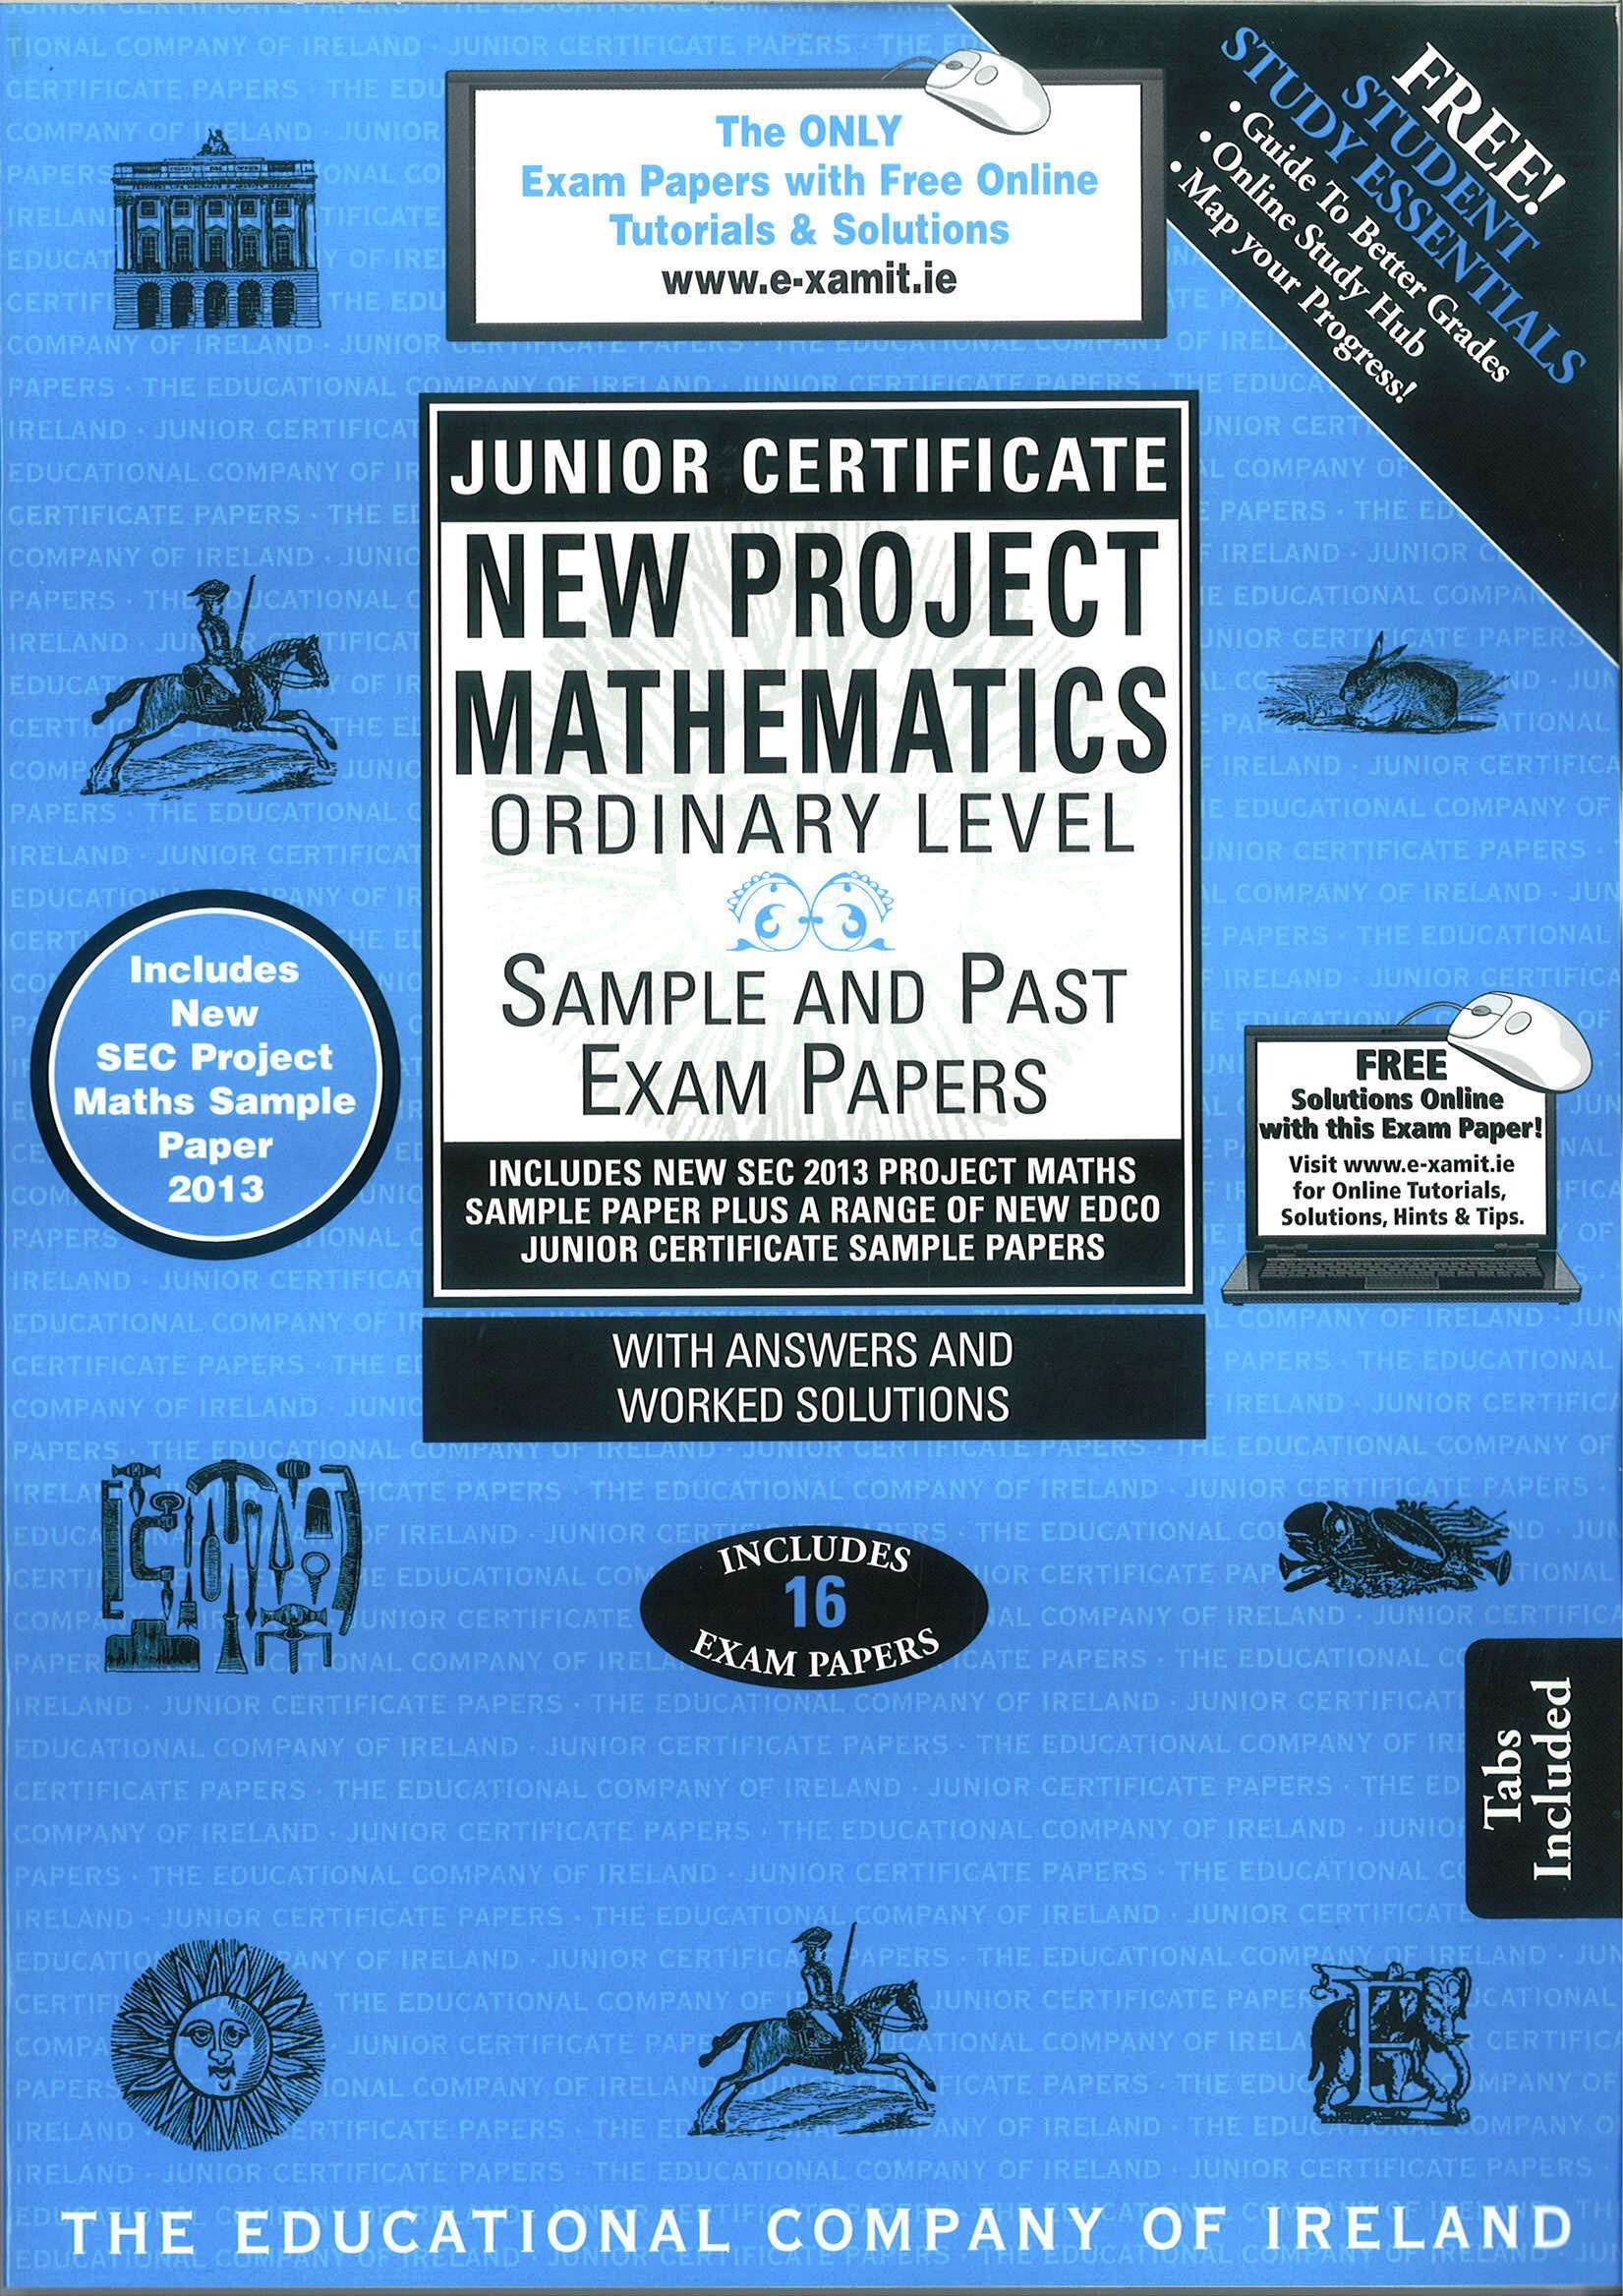 Junior Cert Maths Ordinary Level - Includes 2018 Exam Papers